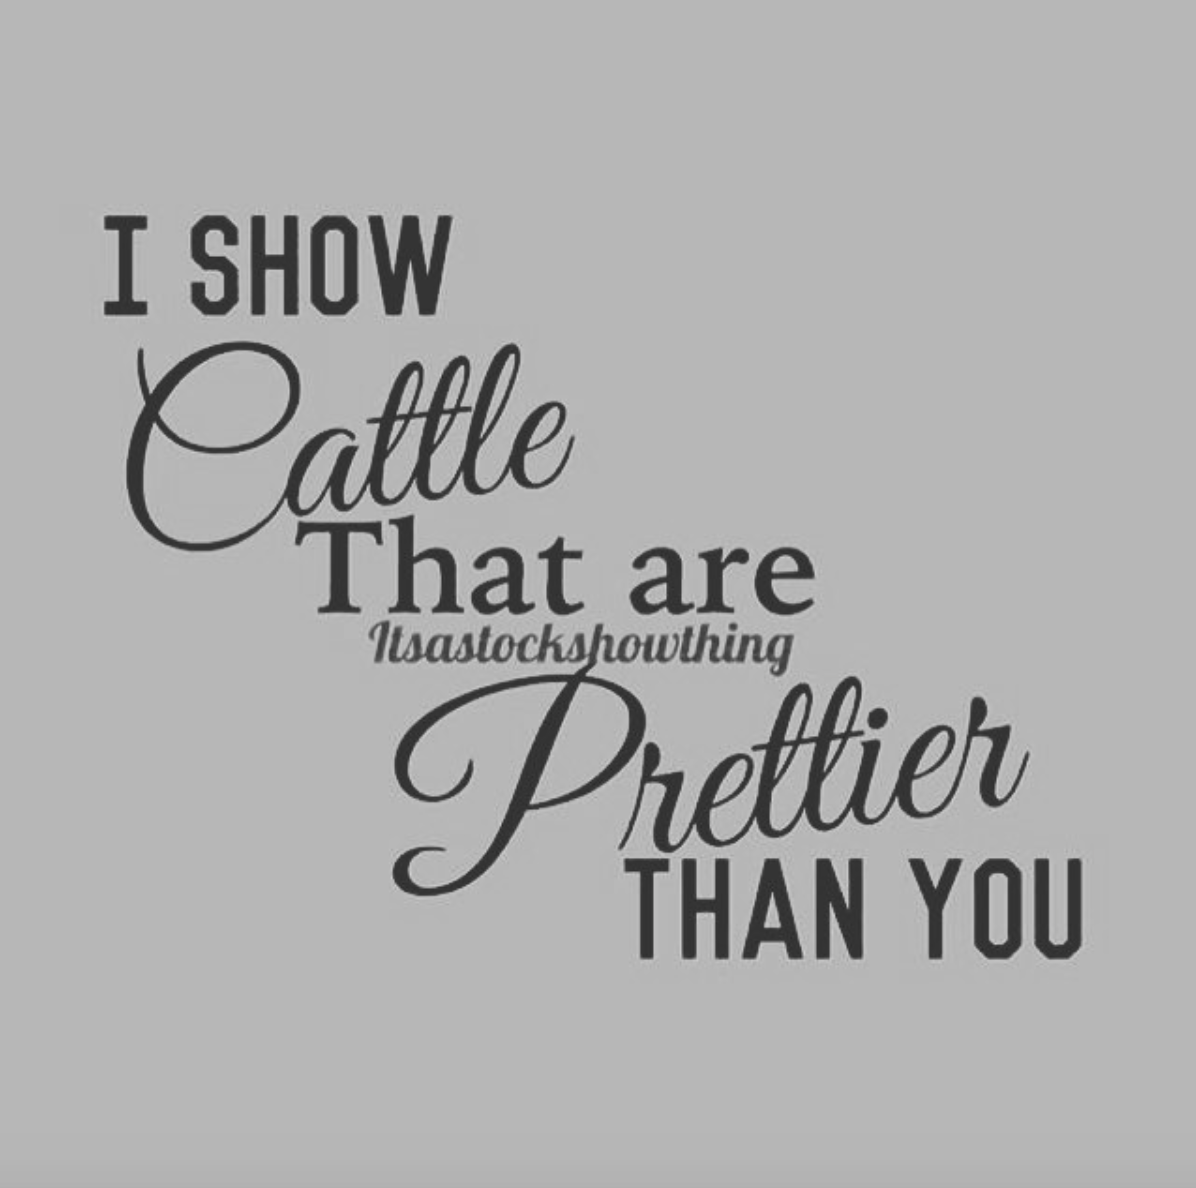 I Show Cattle That Are Prettier Than You